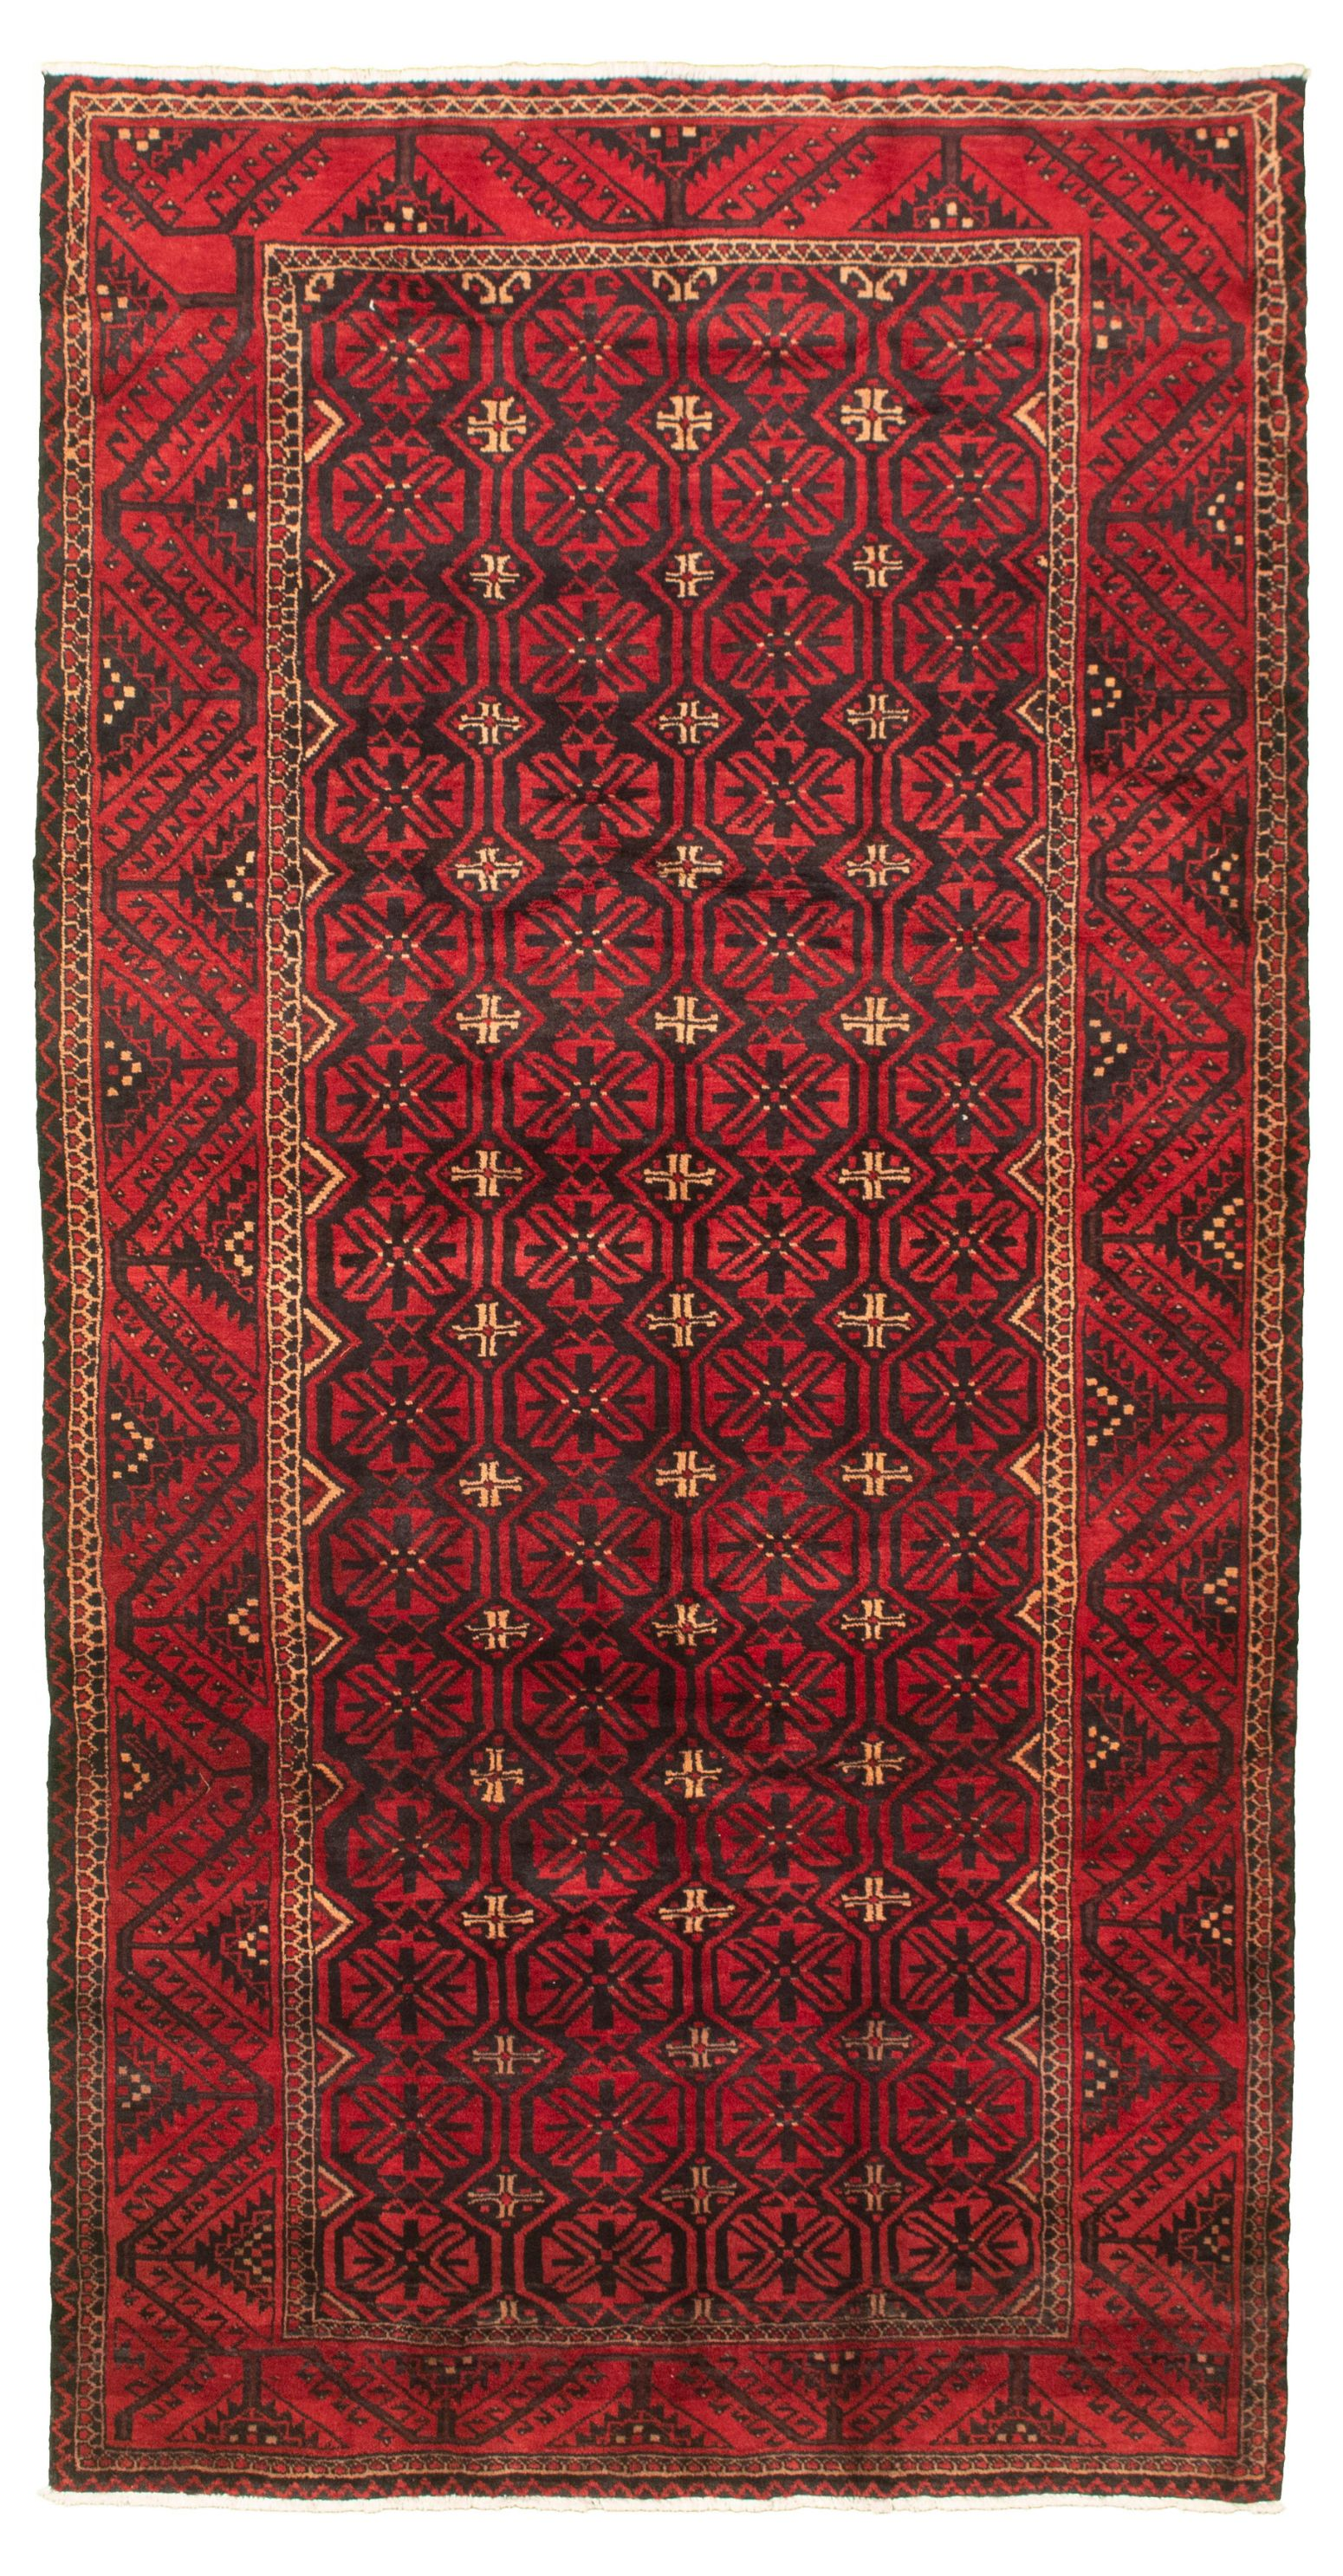 """Hand-knotted Authentic Turkish Red Wool Rug 5'0"""" x 9'8"""" Size: 5'0"""" x 9'8"""""""